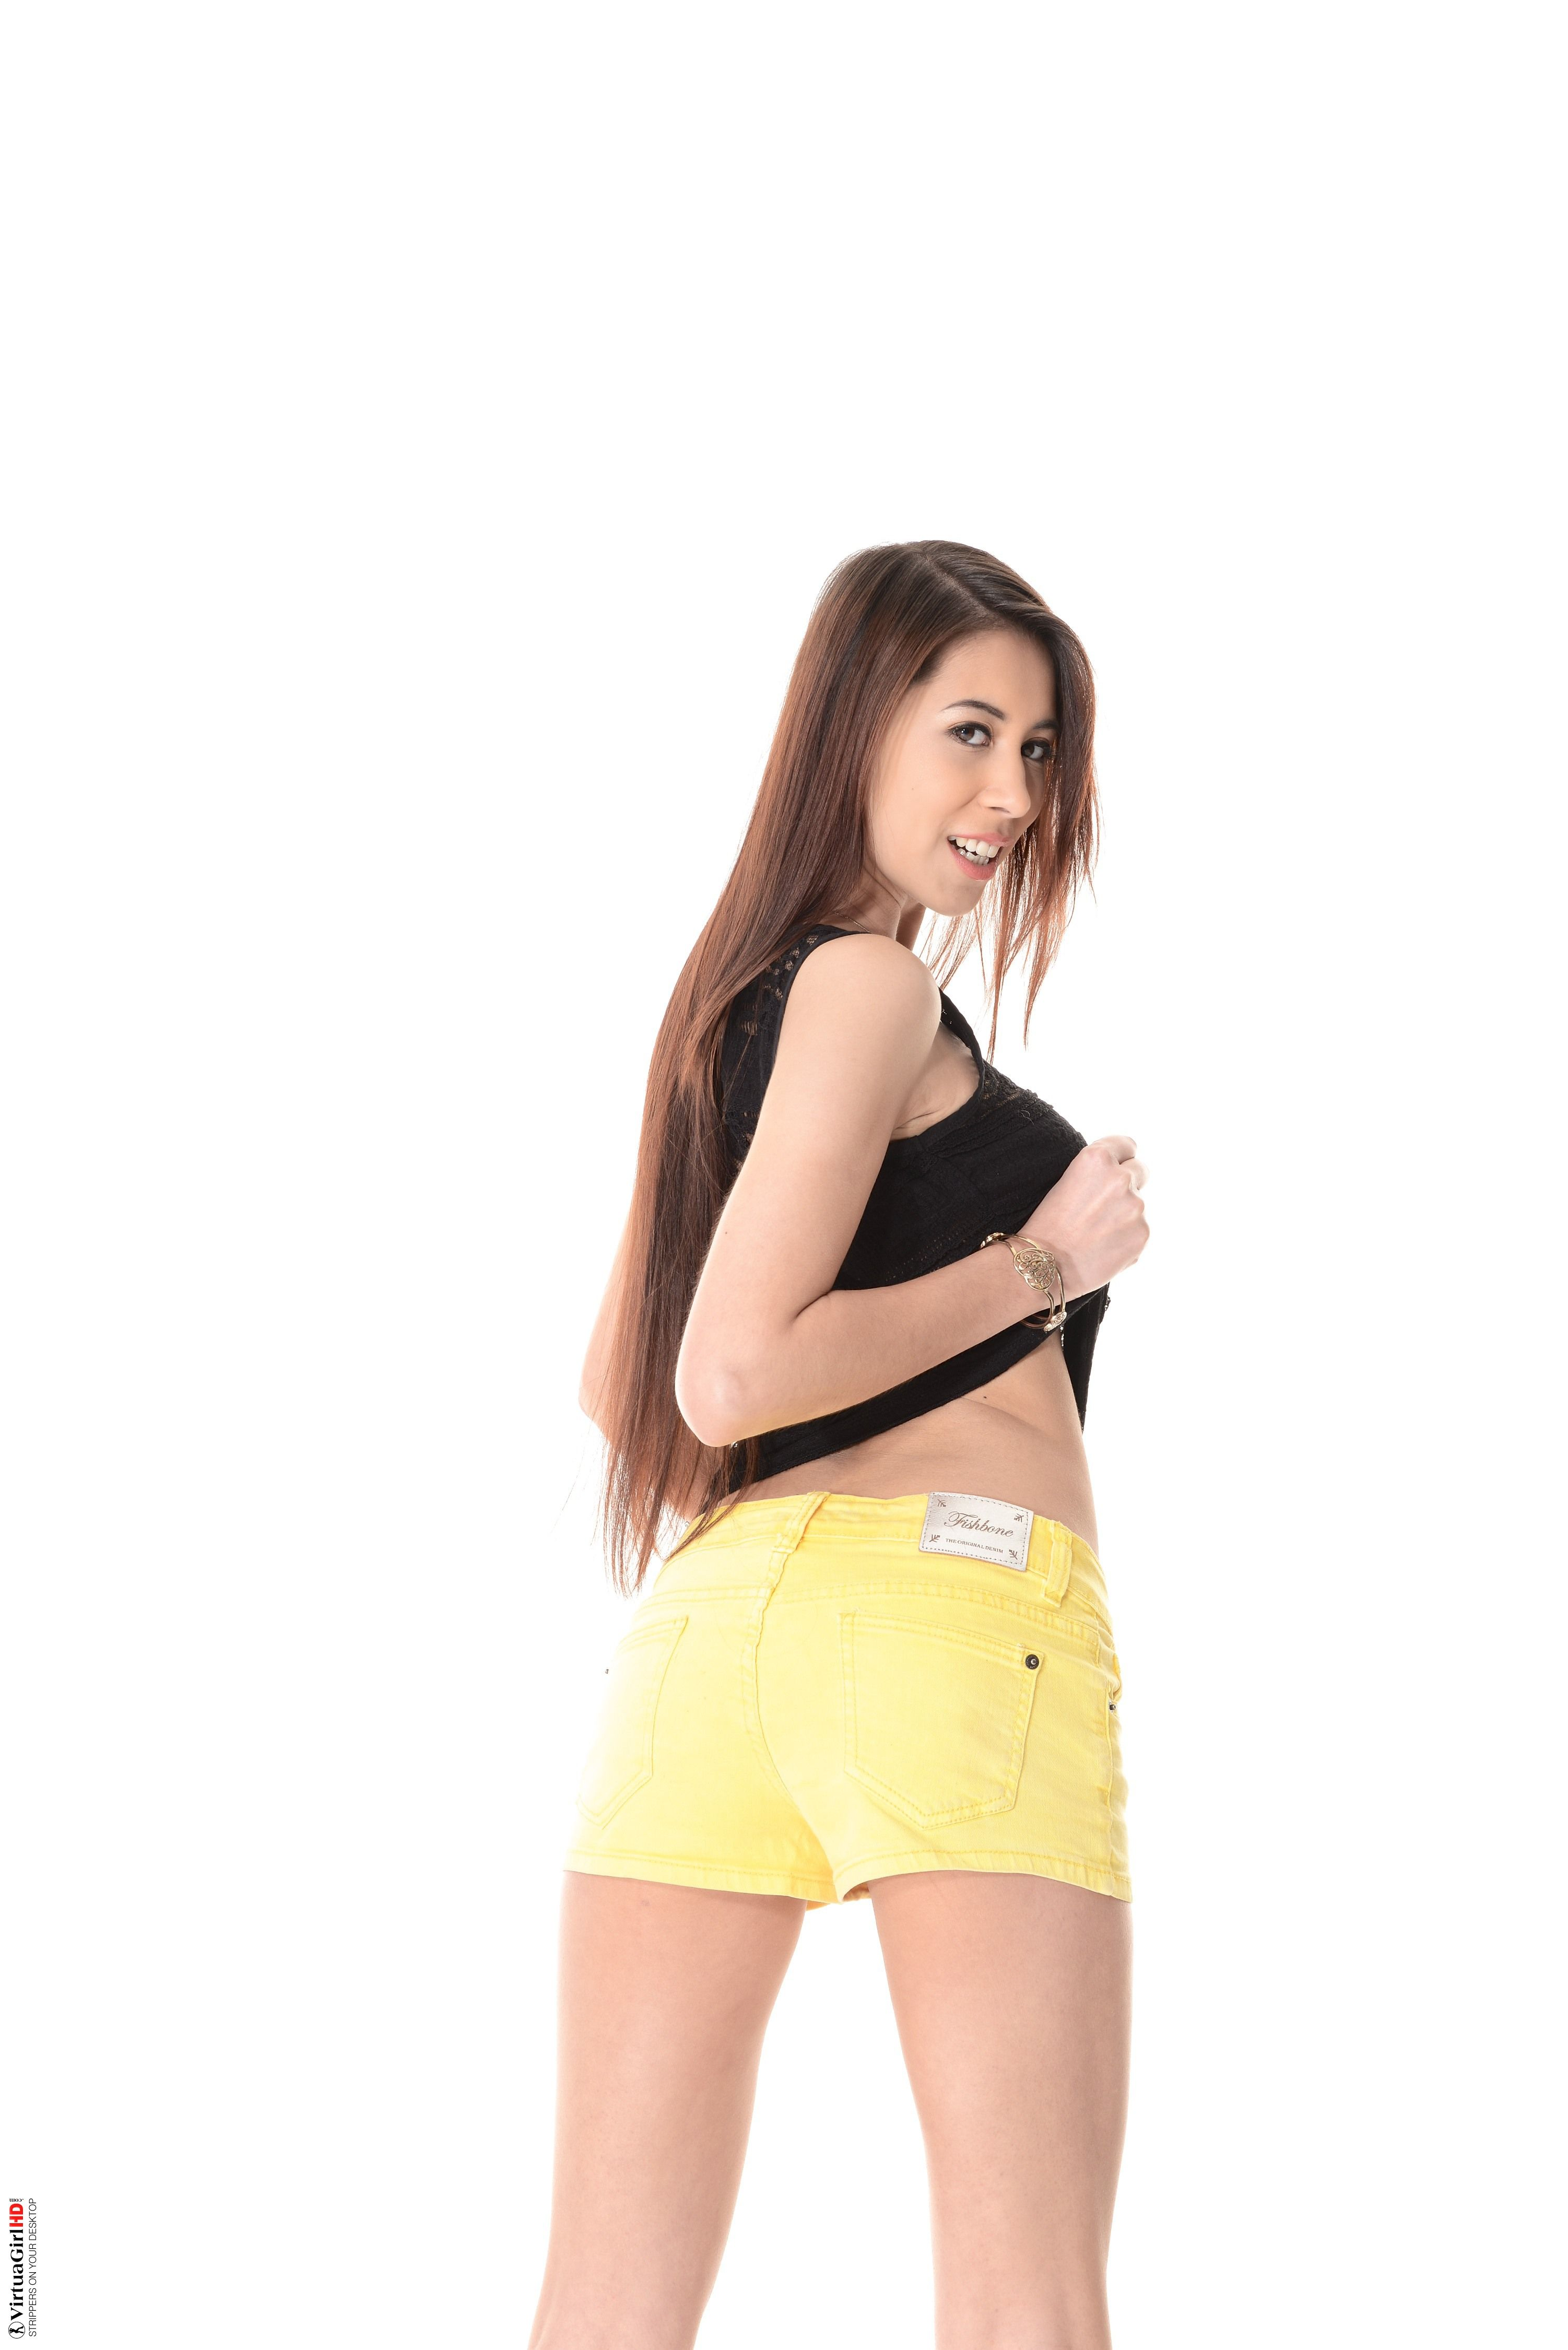 Paula shy young teen are